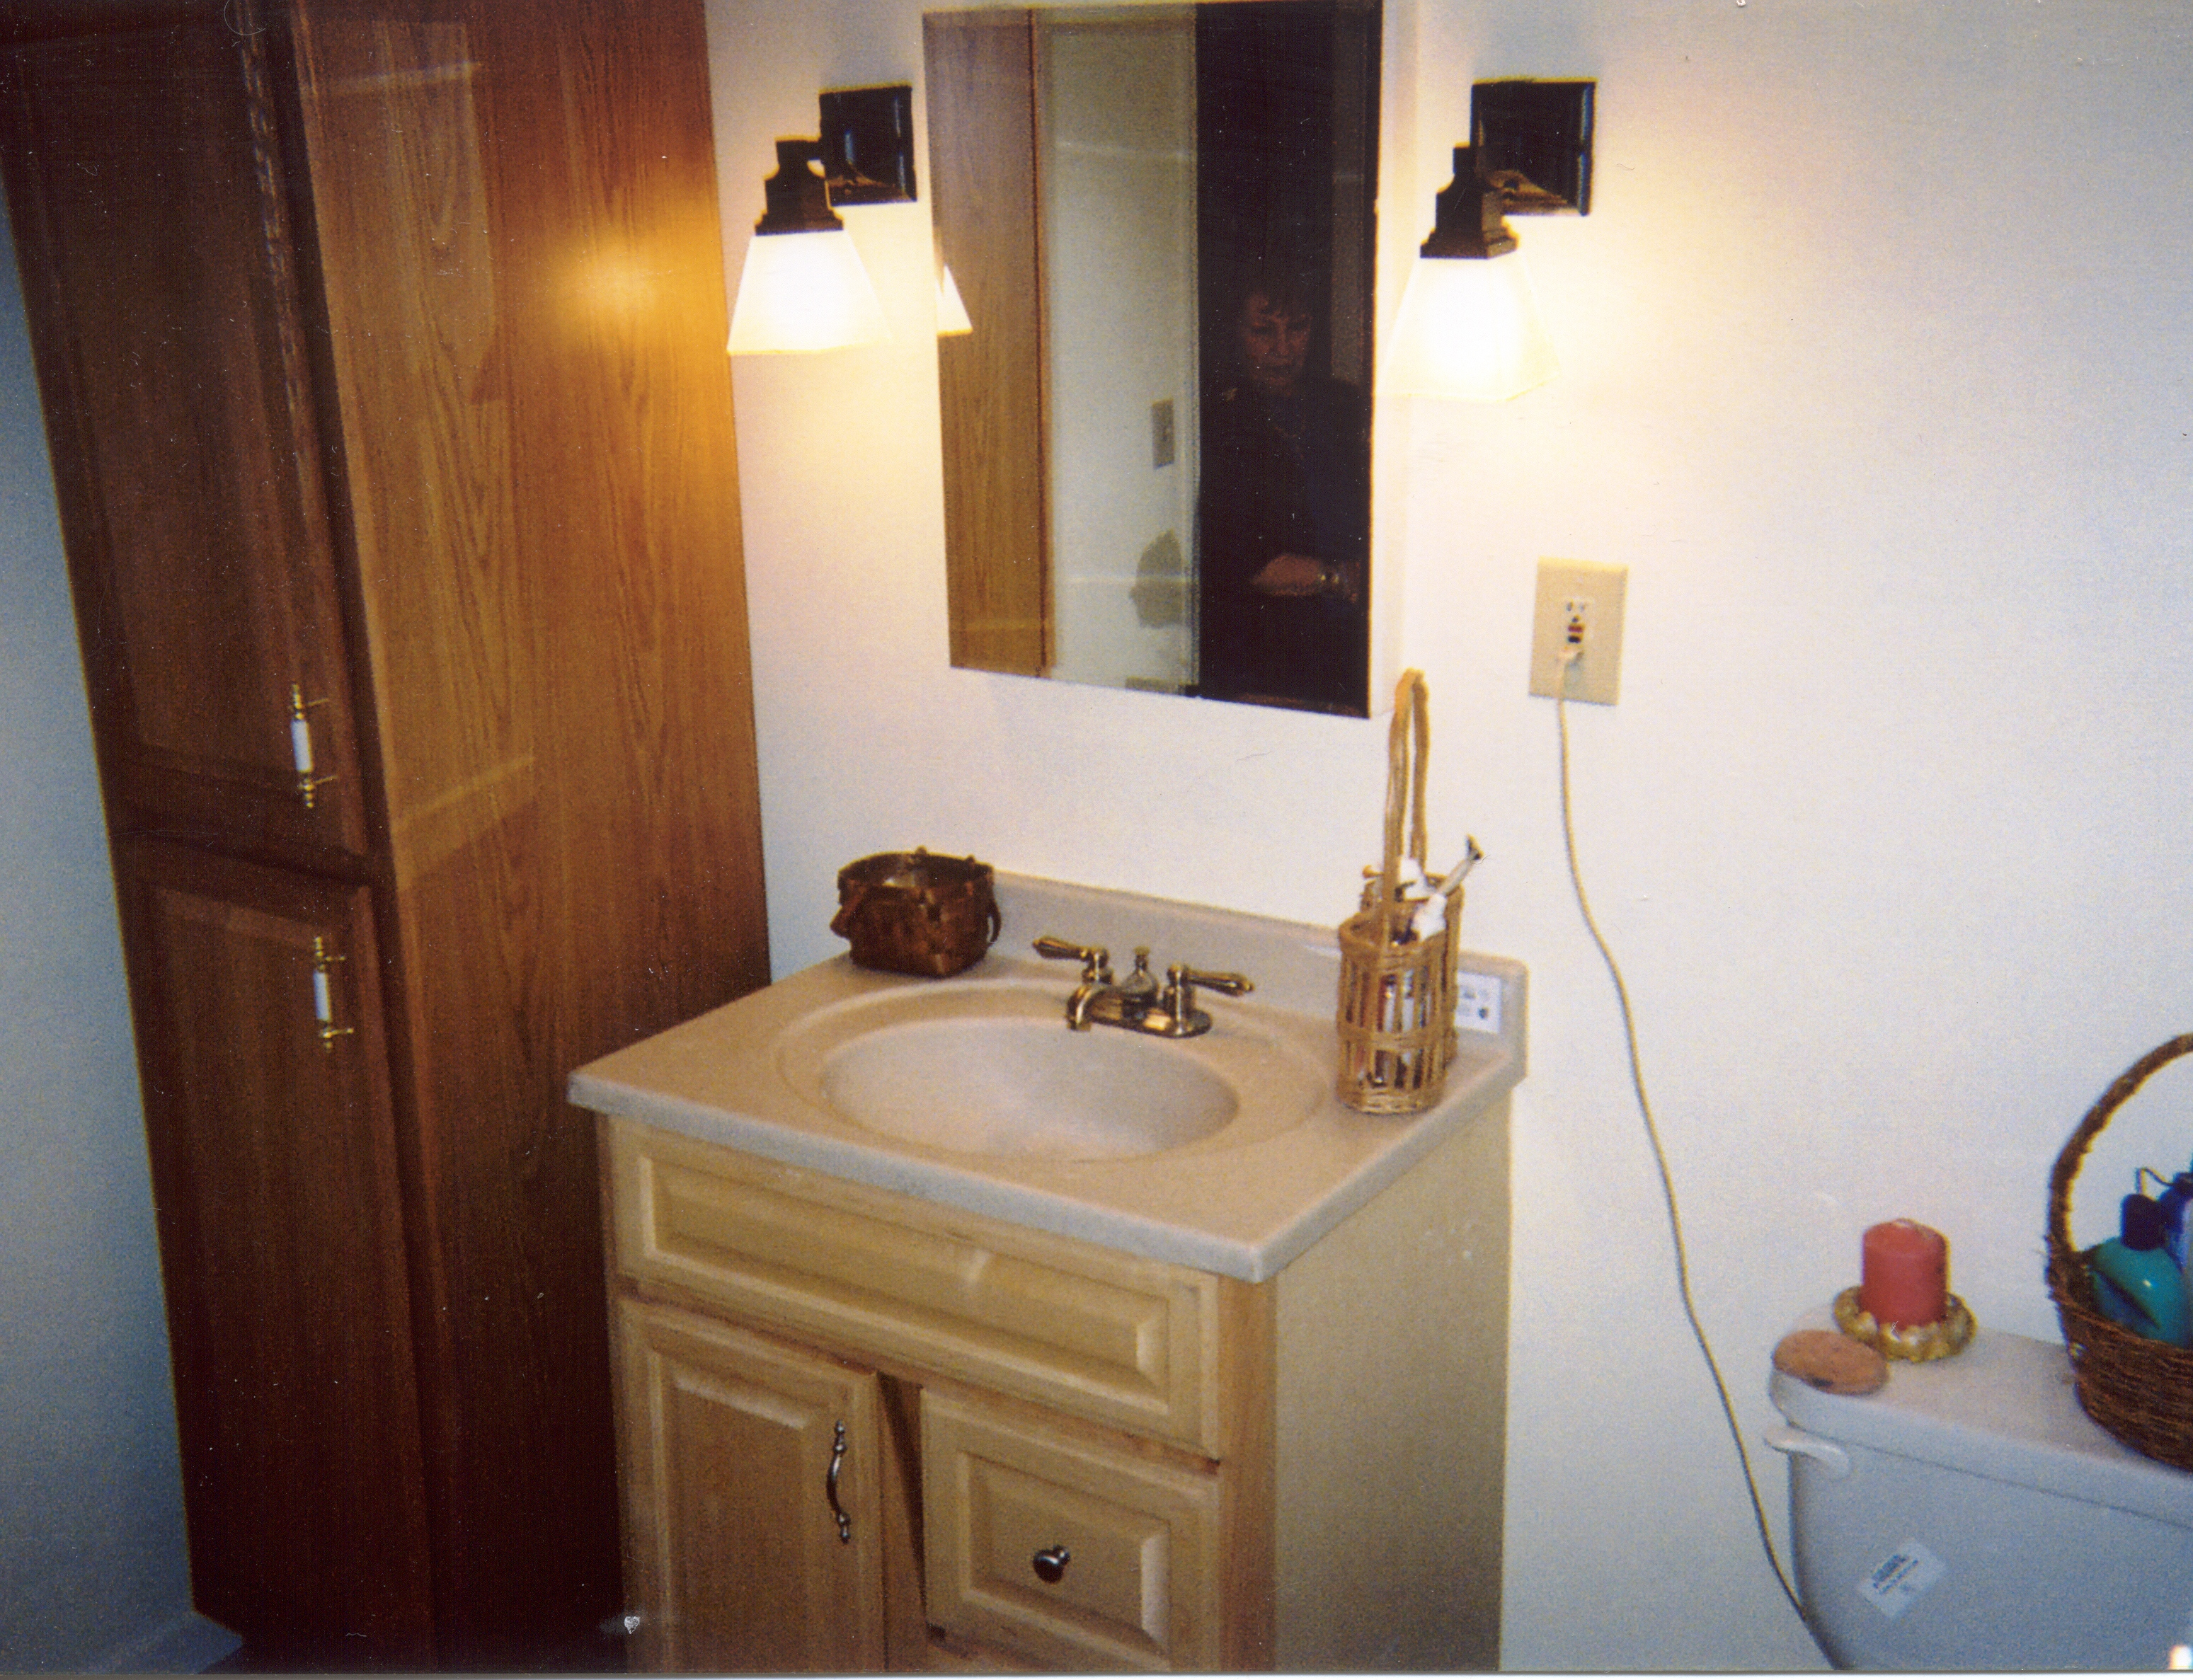 Bathroom remodeling with tub, vanity and toilet.